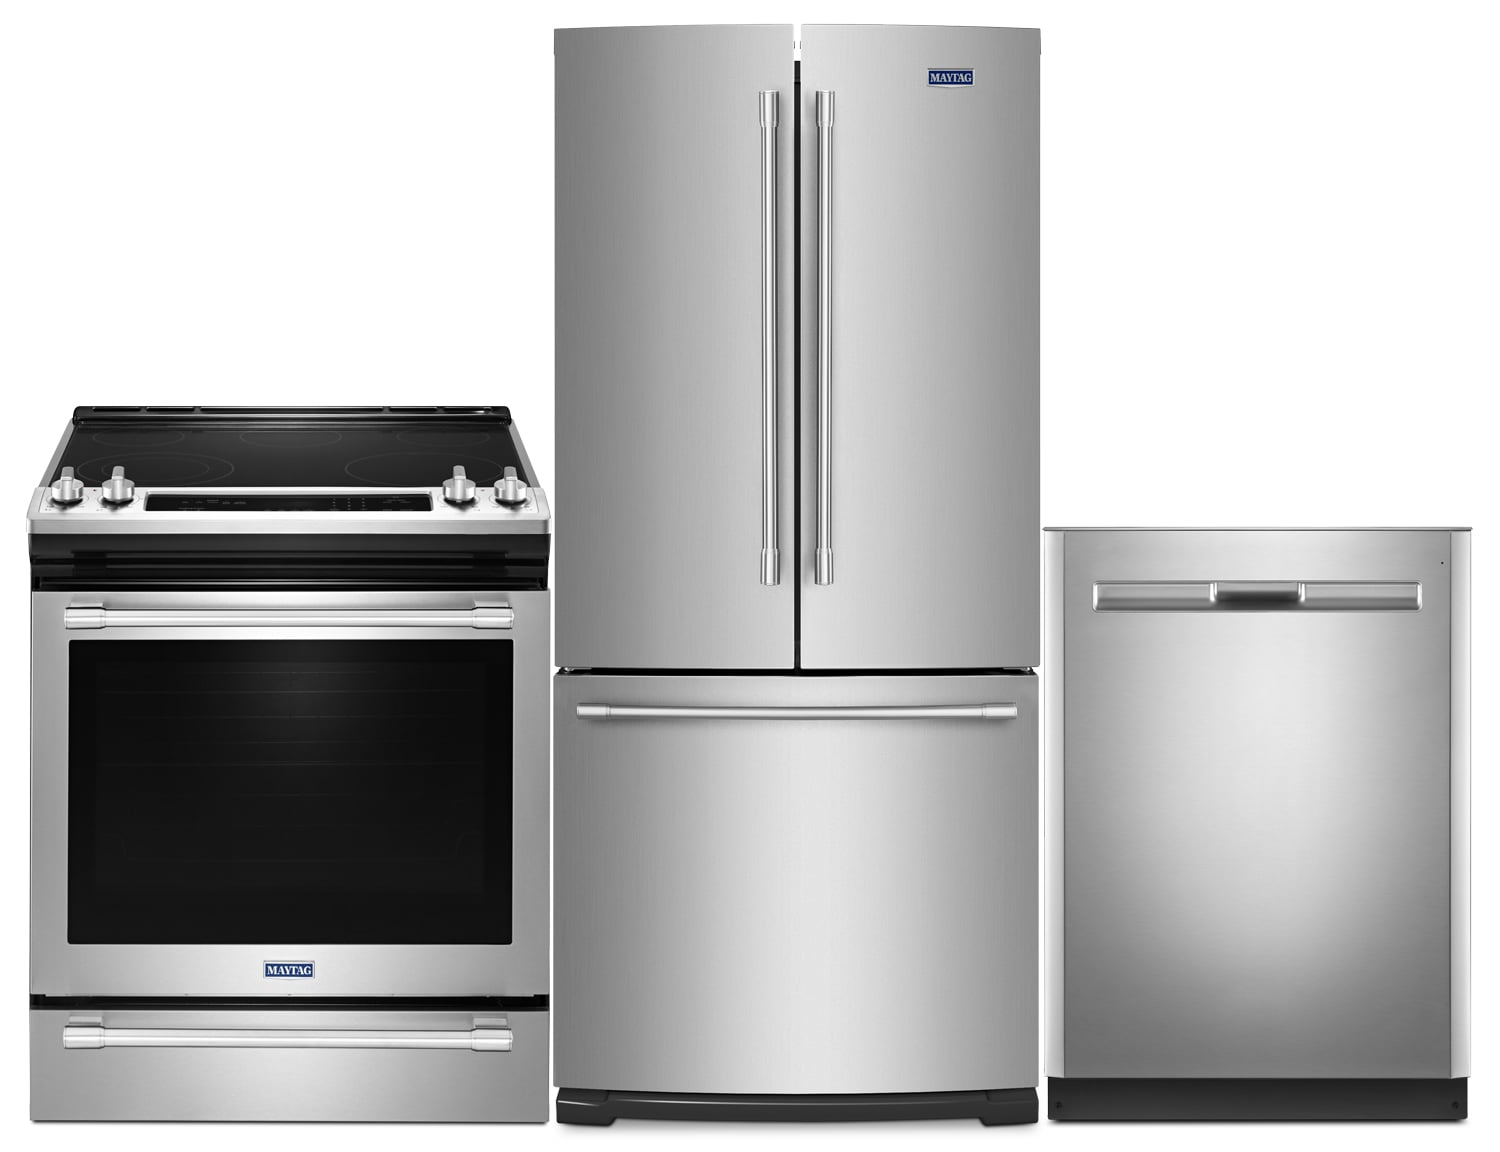 Maytag 20 Cu. Ft. French-Door Refrigerator, 6.4 Cu. Ft. Electric Range and Dishwasher